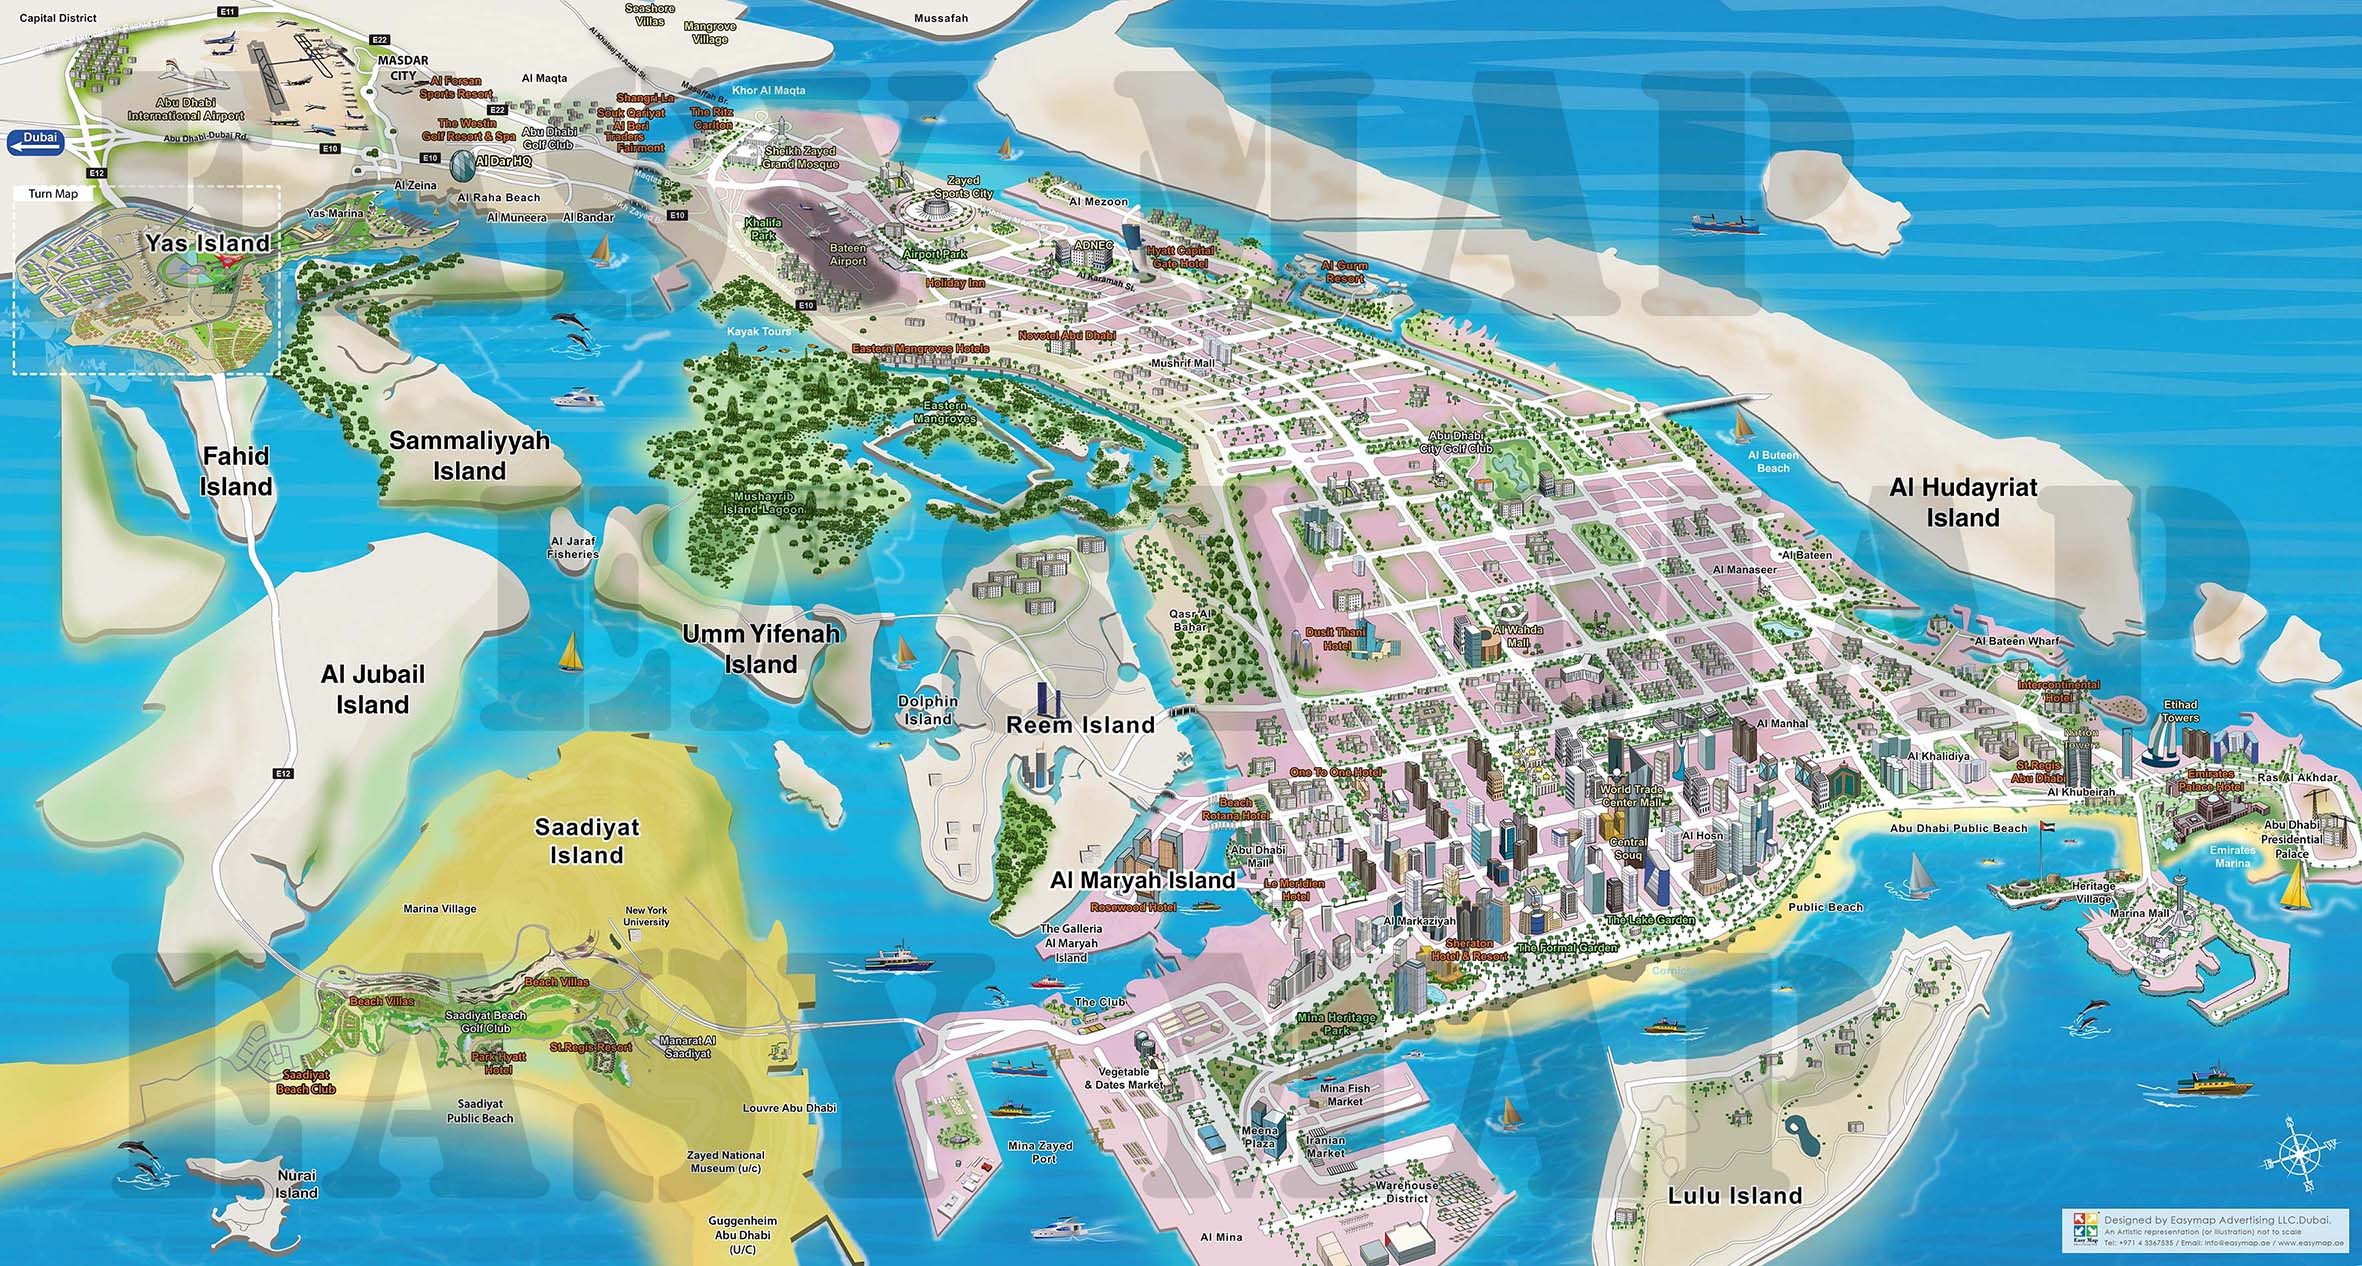 HALA Abu Dhabi Map updated 29 09 2015_color change